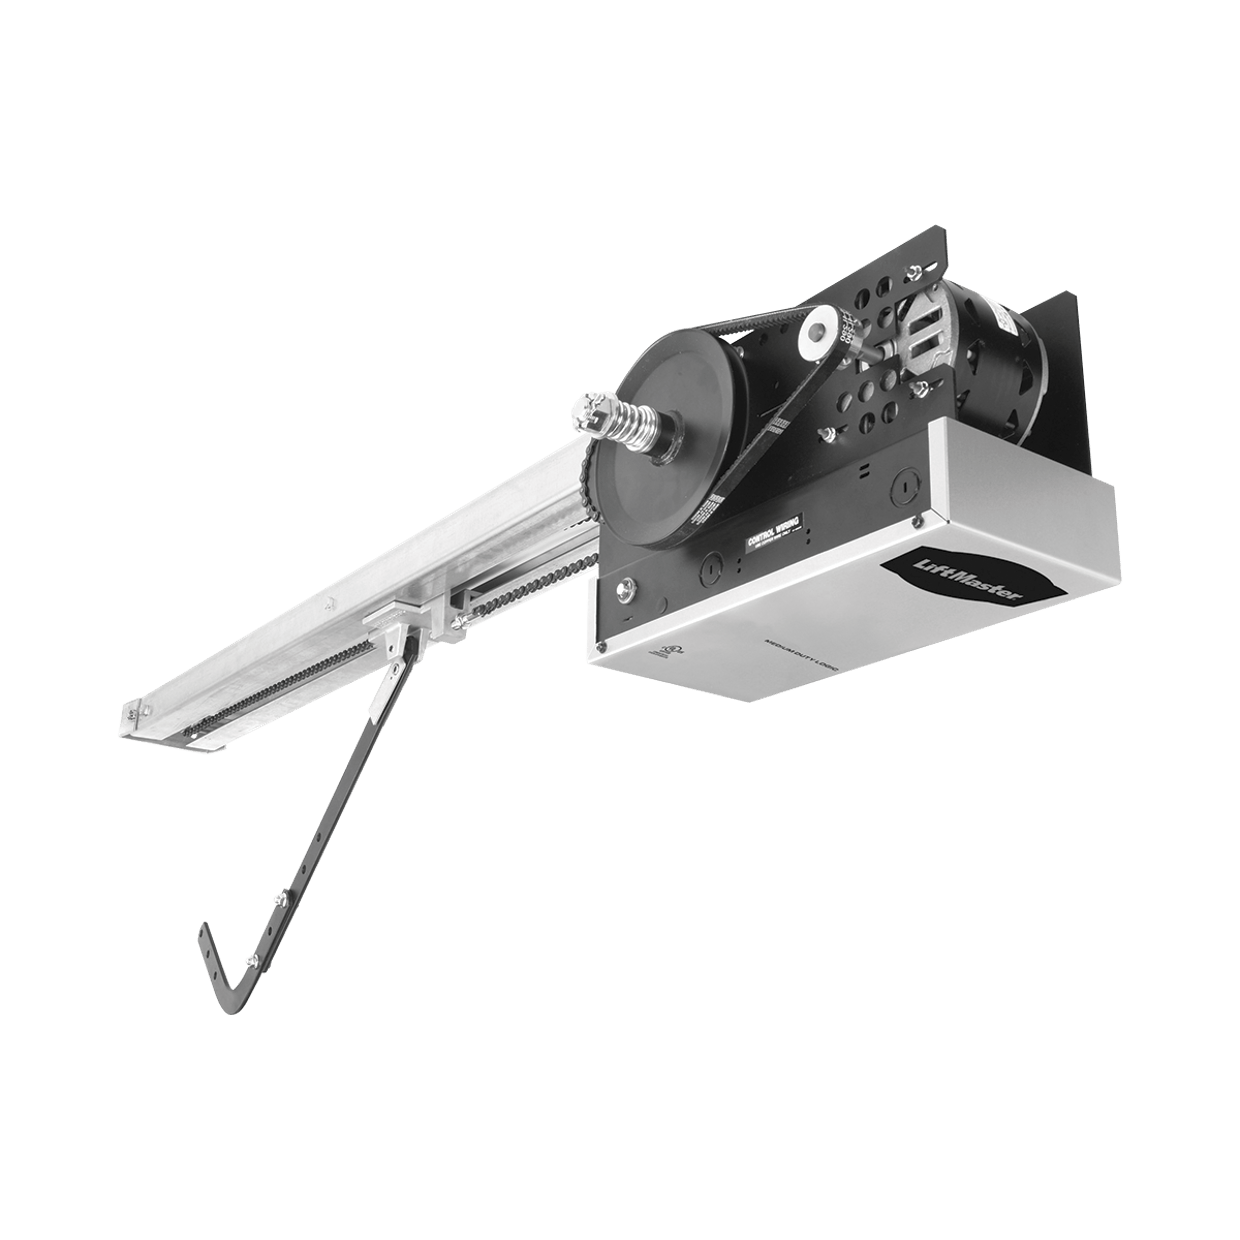 LiftMaster Medium-Duty Commercial Garage Door Operator